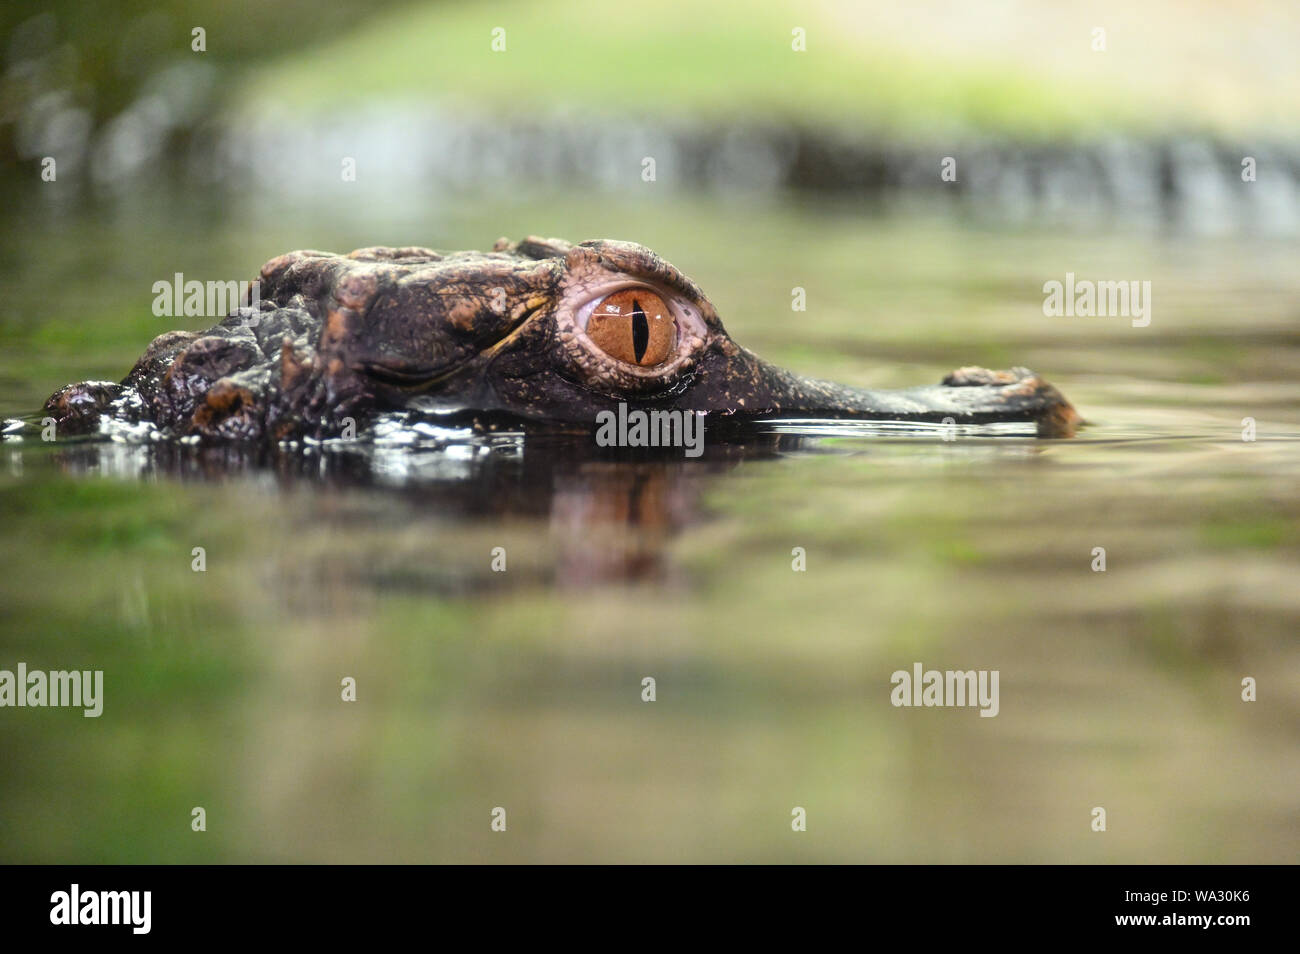 Beautiful close-up portrait of young caiman in water. Stock Photo